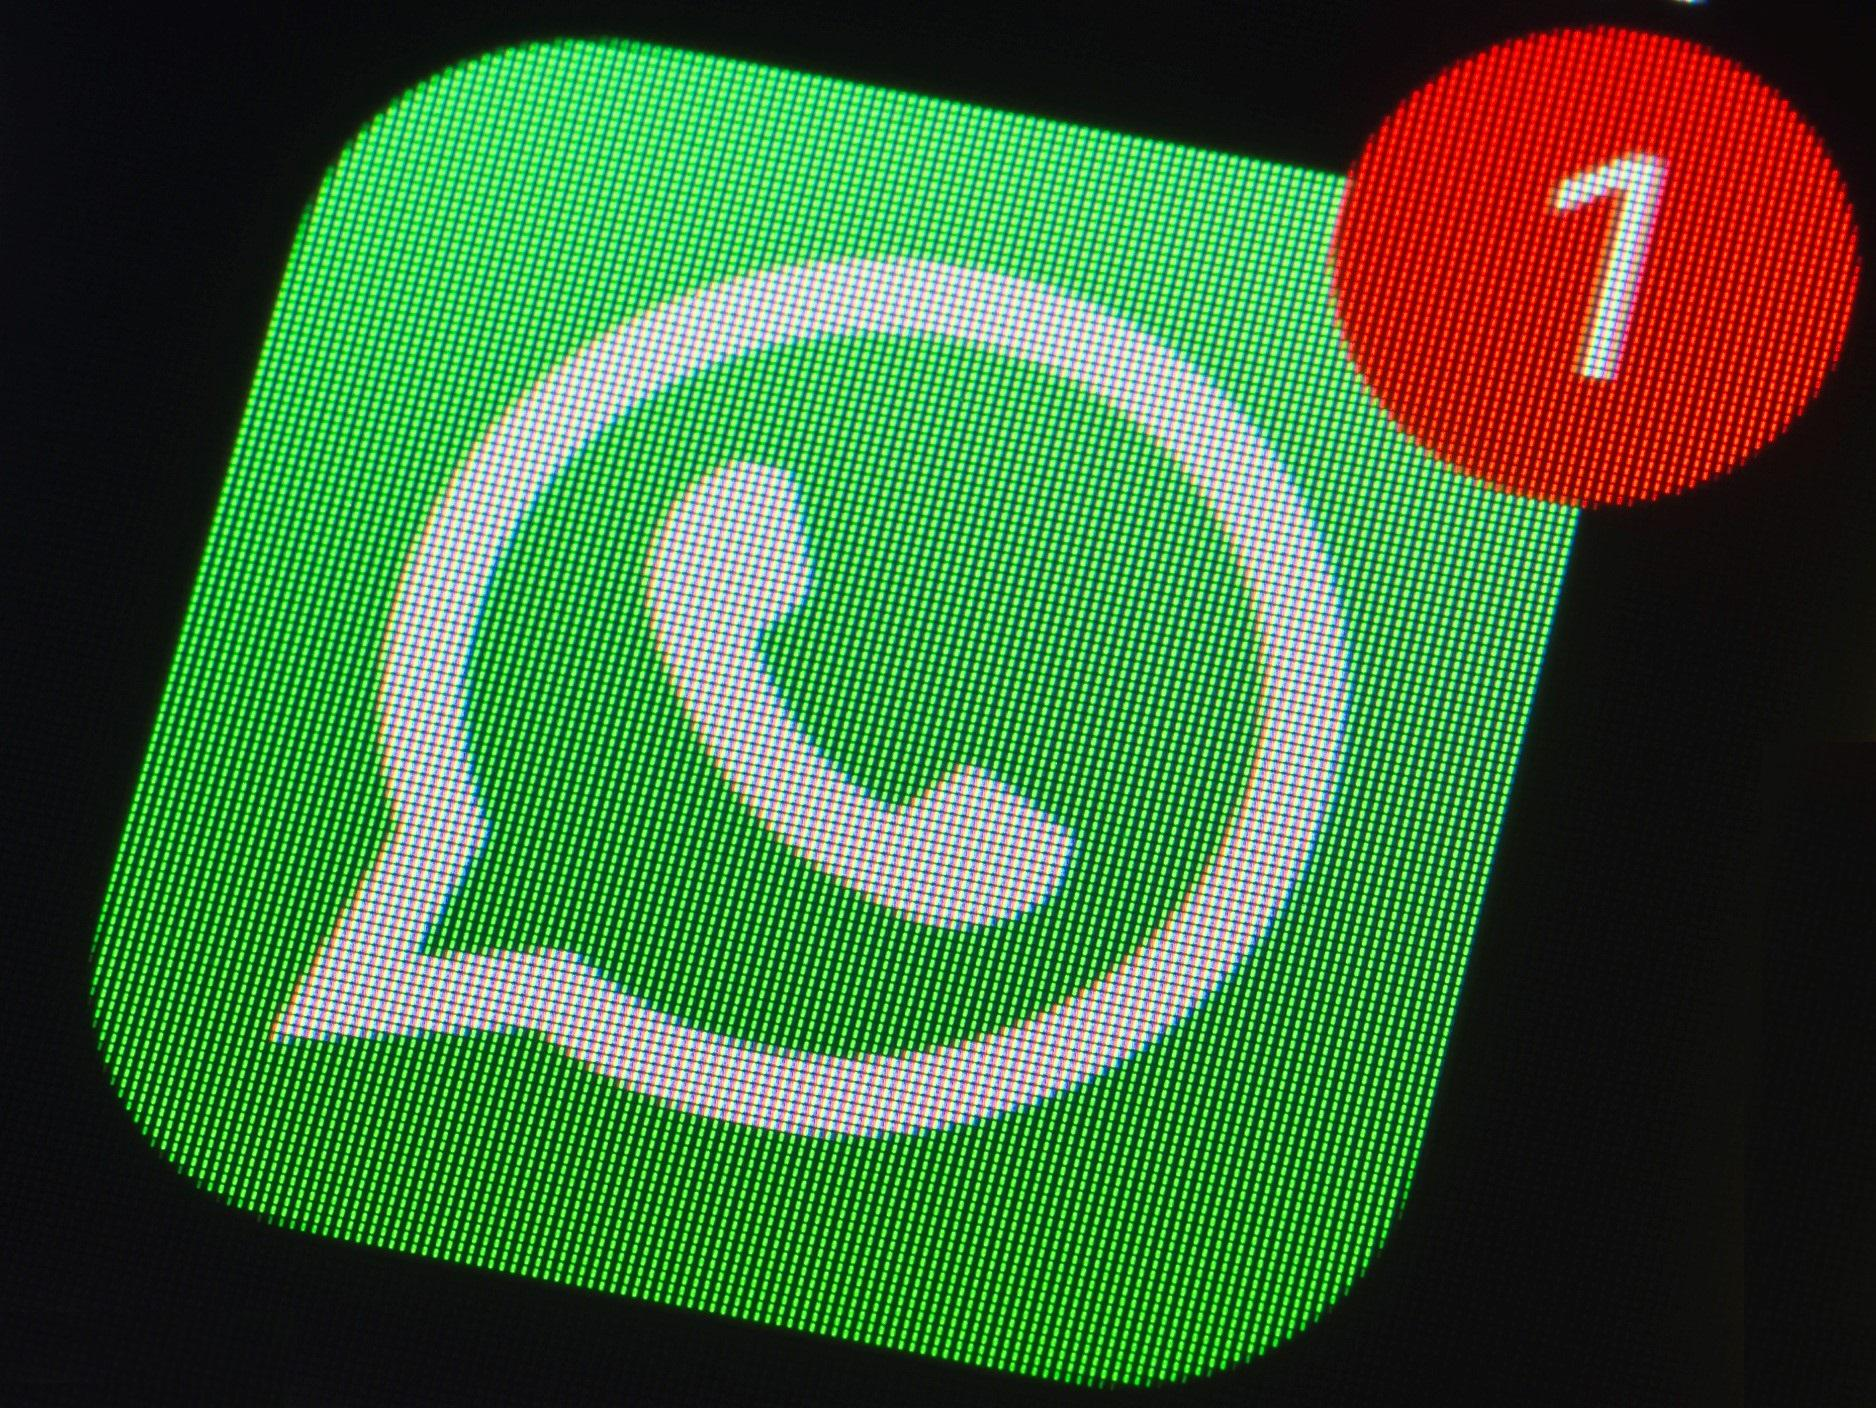 WhatsApp update drains battery on Android phones, users claim